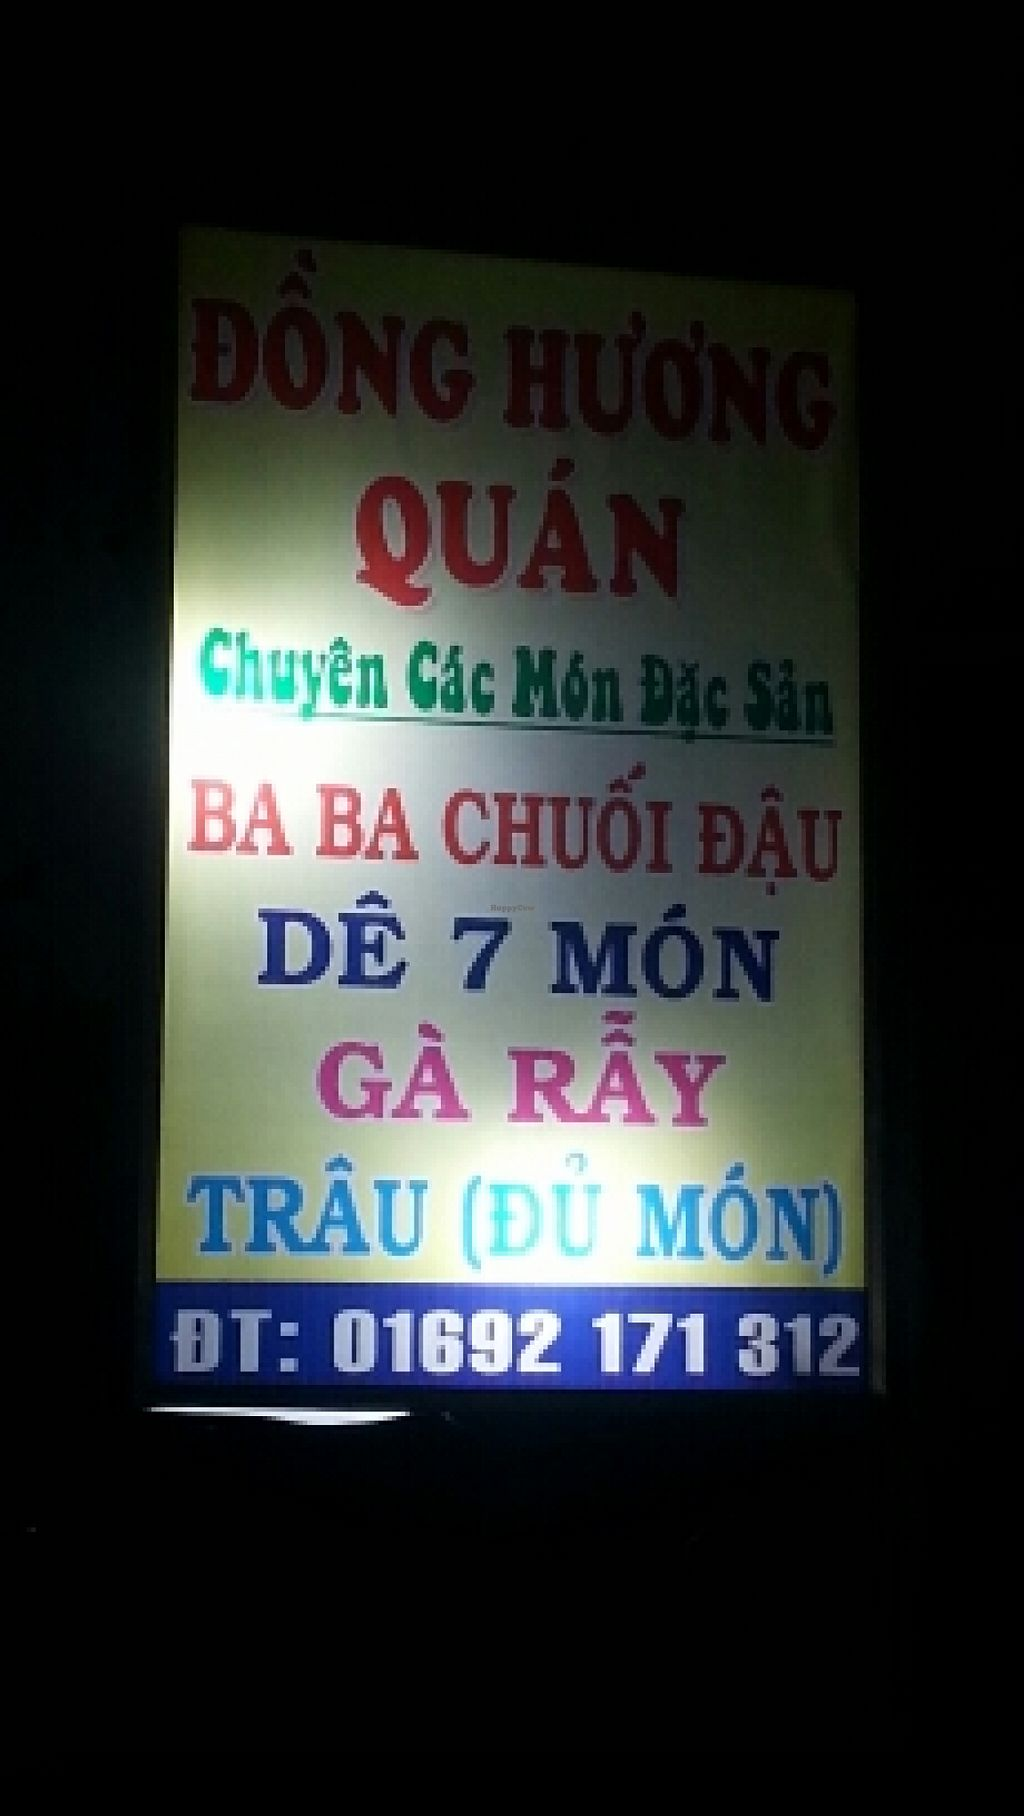 """Photo of Dong Huong Quan  by <a href=""""/members/profile/KarinS"""">KarinS</a> <br/>The sign of the restaurant <br/> January 3, 2016  - <a href='/contact/abuse/image/67845/130941'>Report</a>"""